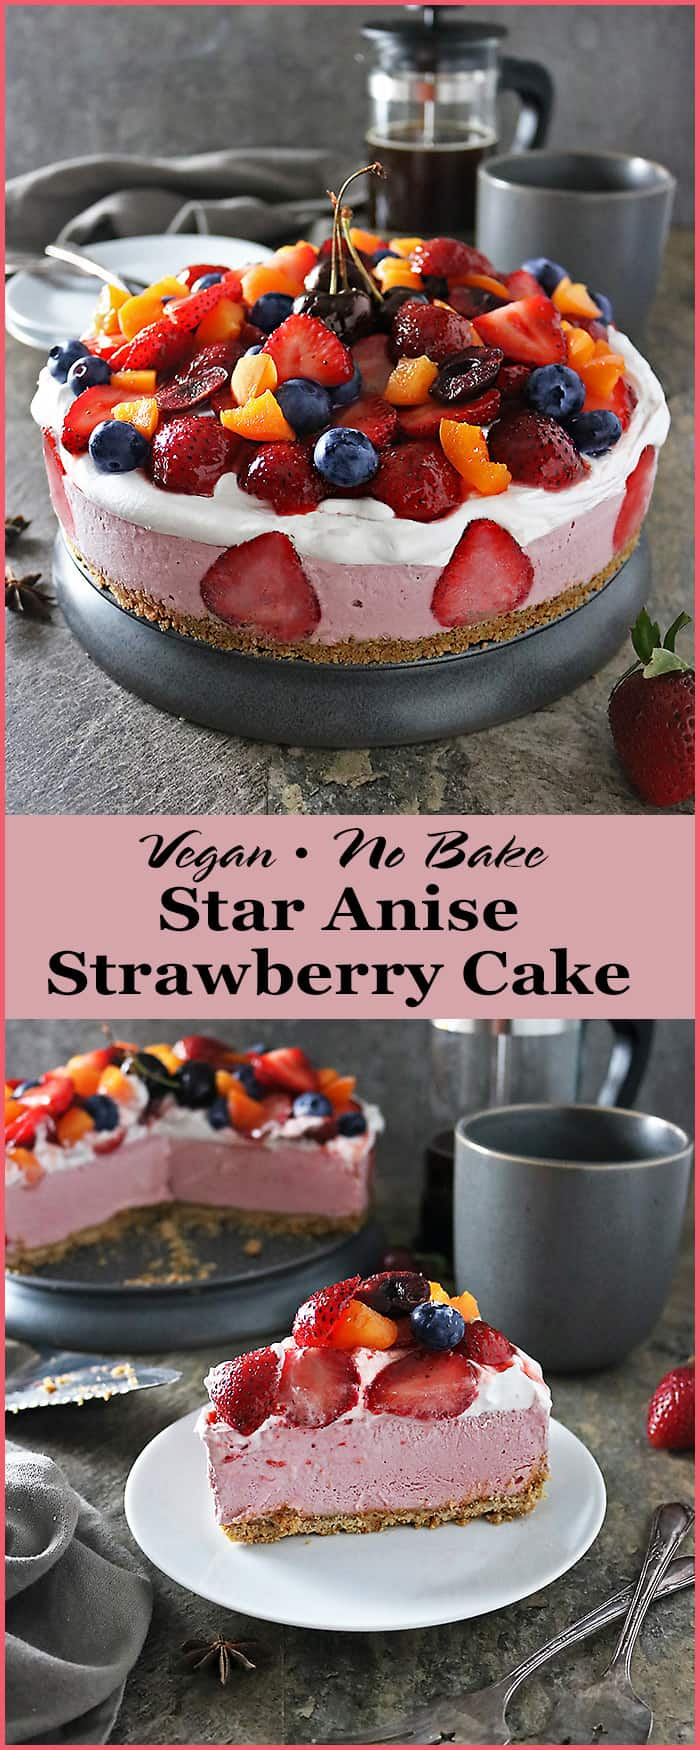 Vegan No-Bake Star Anise & Strawberry Cashew Cake with seasonal produce from Sprouts!